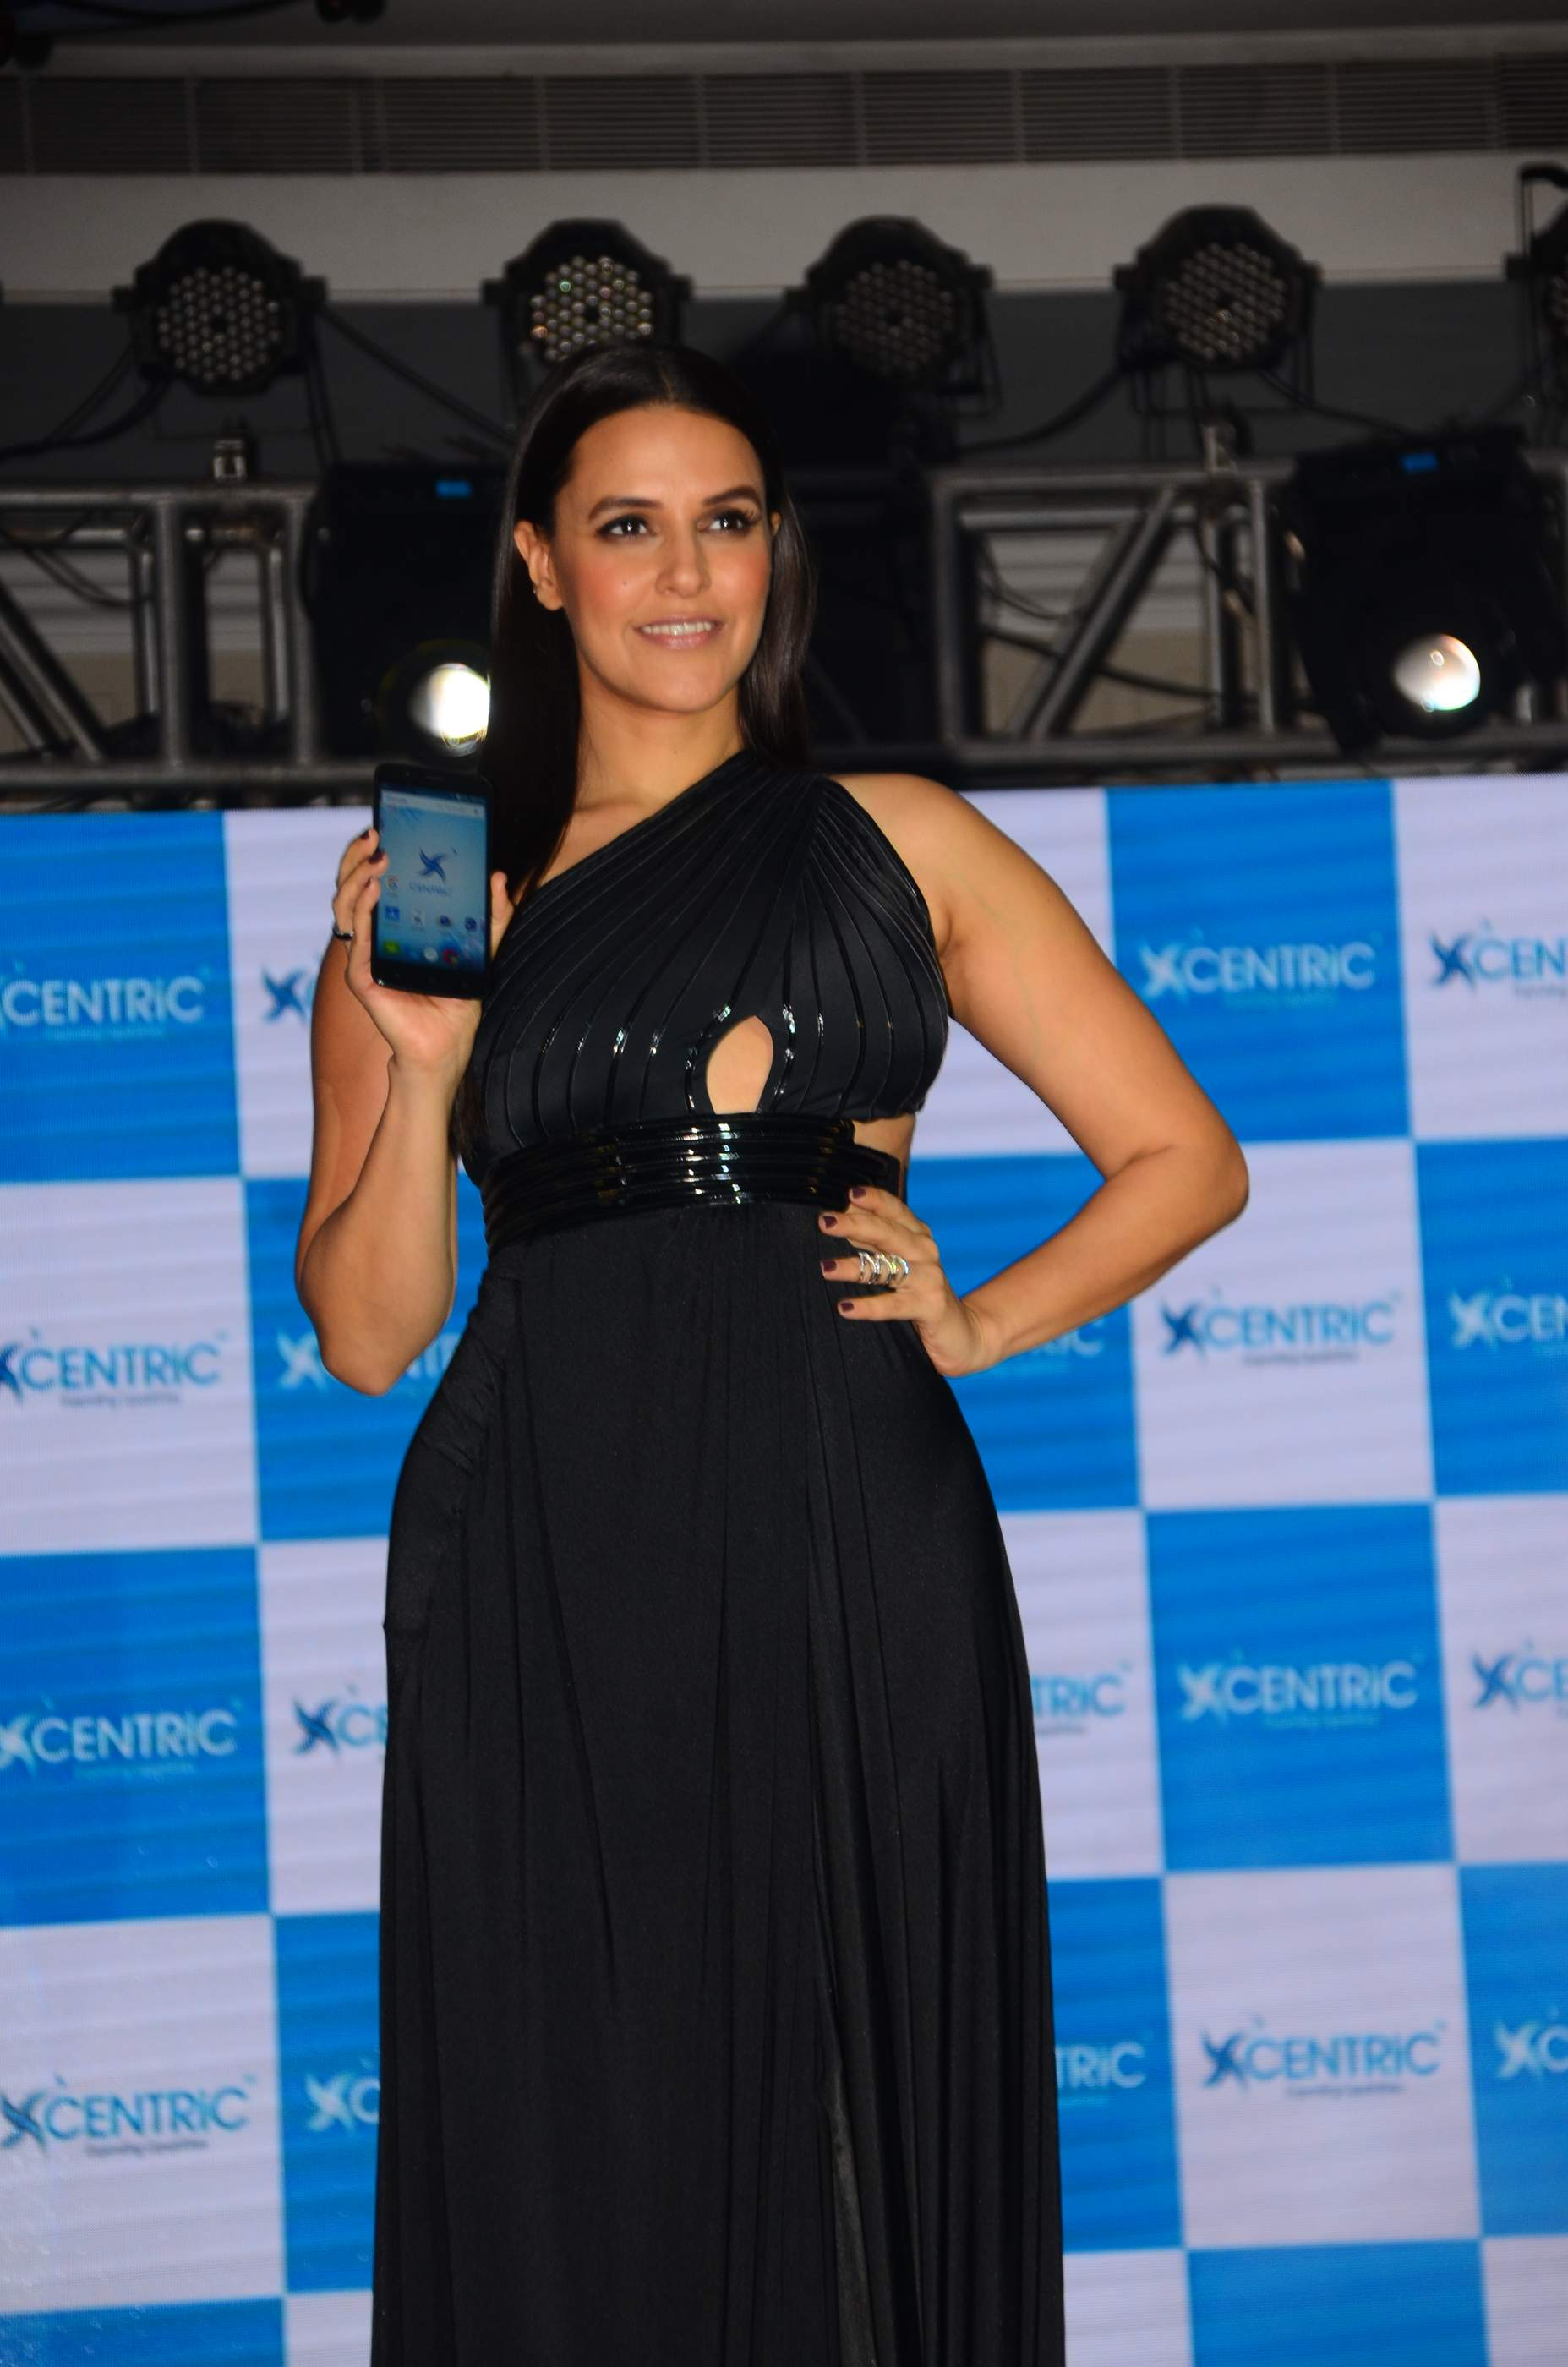 HOT Photo Stills Of Beauty Queen Neha Dhupia | Xcentric HOT Photo Stills Of Beauty Queen Neha Dhupia | Xcentric Neha Dhupia Xcentric 30